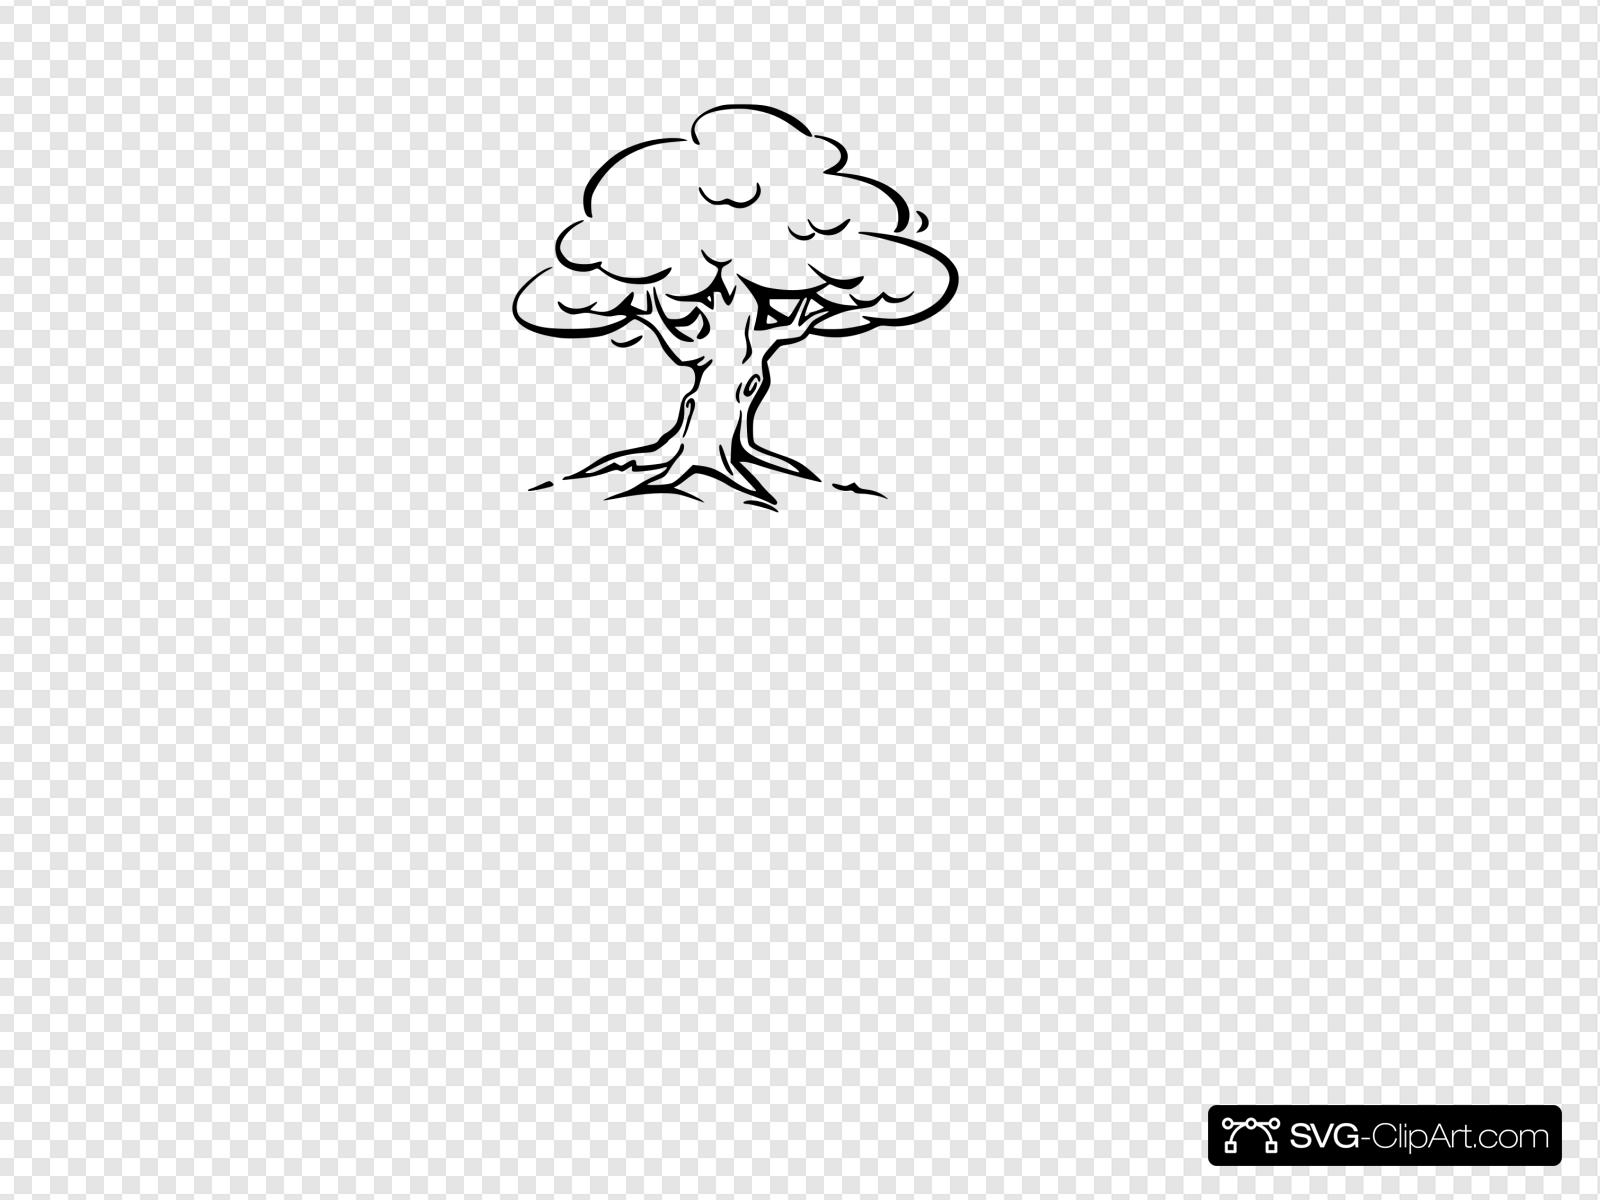 Blank Tree Clip art, Icon and SVG.